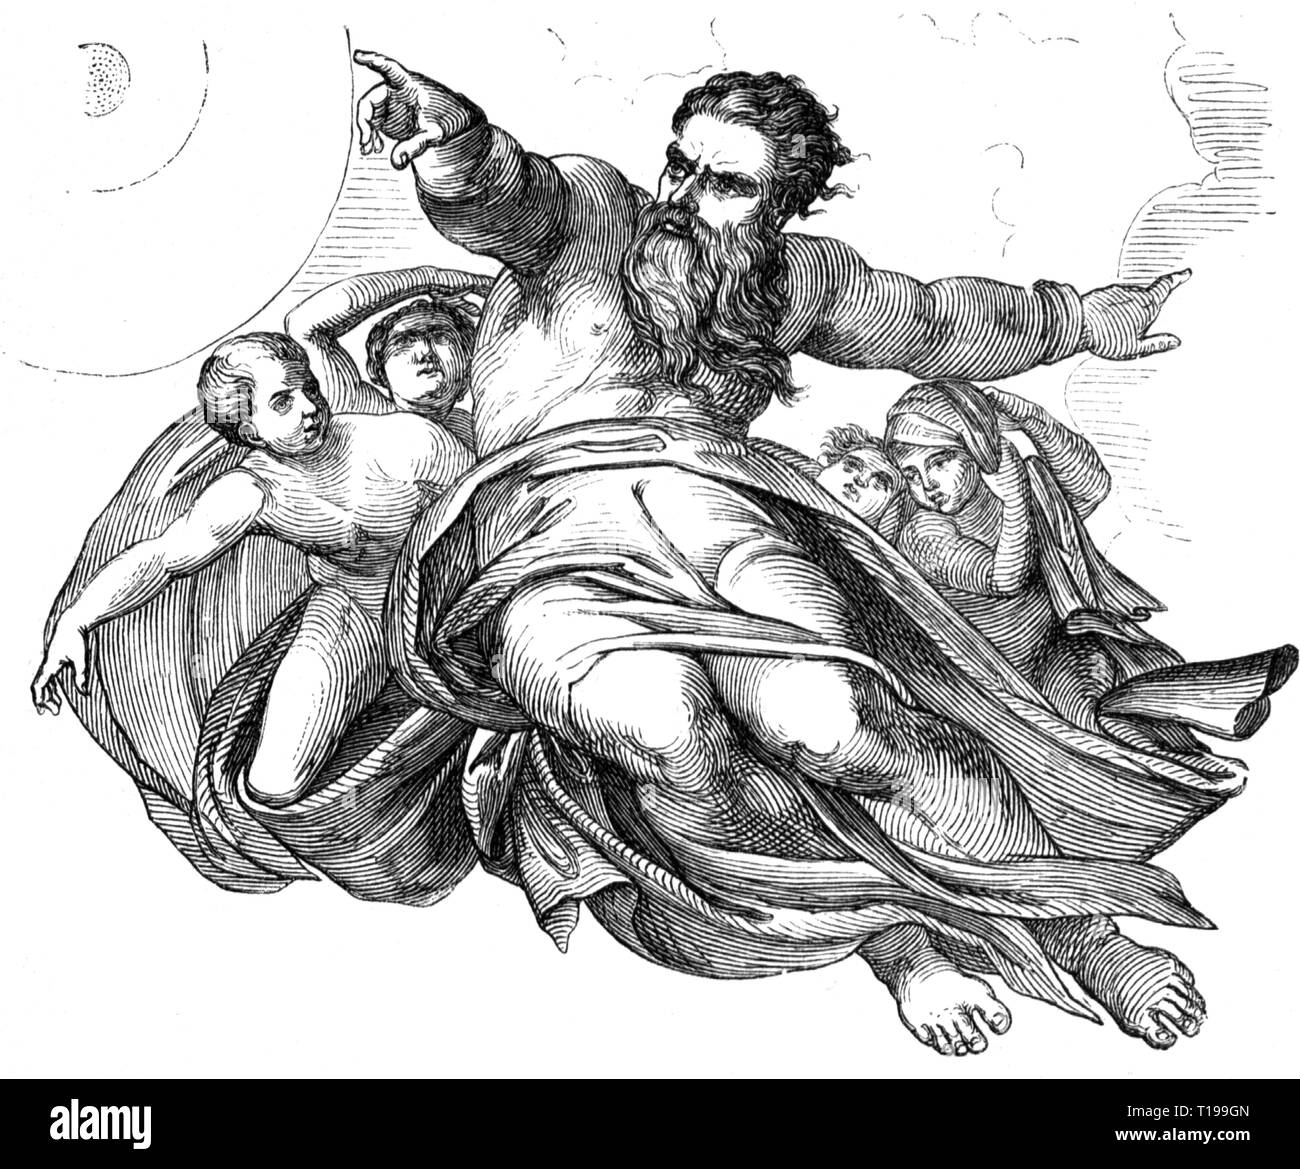 religion, Christianity, God, God the Father, adapted from painting by Michelangelo (1475 - 1564), wood engraving, 19th century, graphic, graphics, full-length, full length, beards, full beard, angel, angels, pointing, point, sun, suns, intellectual creation, Allfather, the Creator, almighty, world leader, crucifix, creator, creators, creation, creations, genesis, religion, religions, God, Gods, deity, divinity, deities, historic, historical, Artist's Copyright has not to be cleared - Stock Image